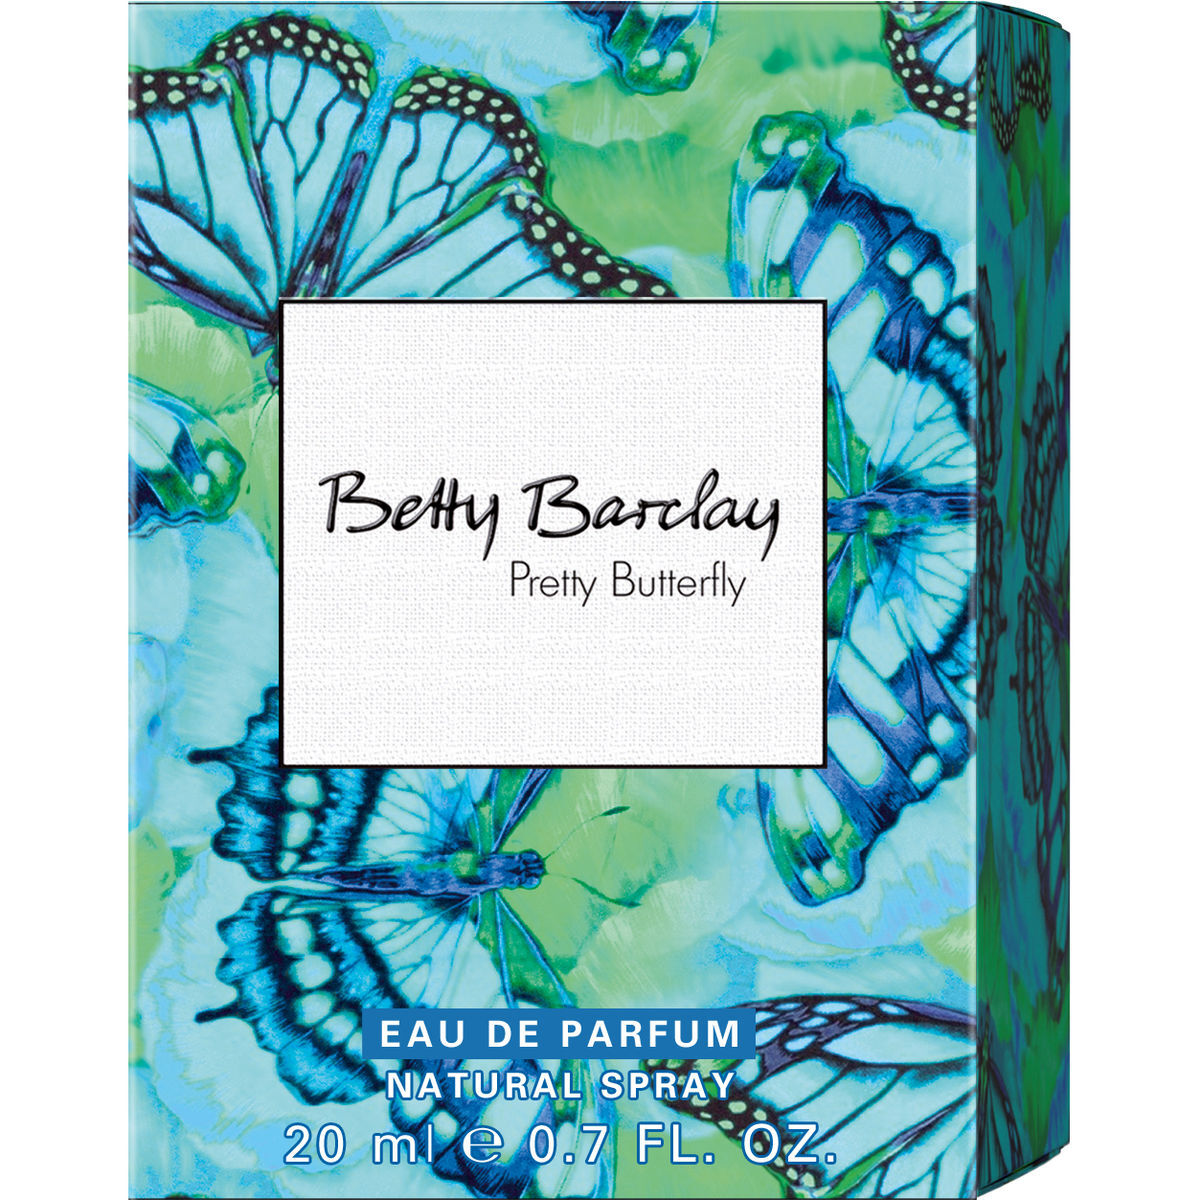 betty barclay pretty butterfly eau de parfum 20 ml karstadt online shop. Black Bedroom Furniture Sets. Home Design Ideas